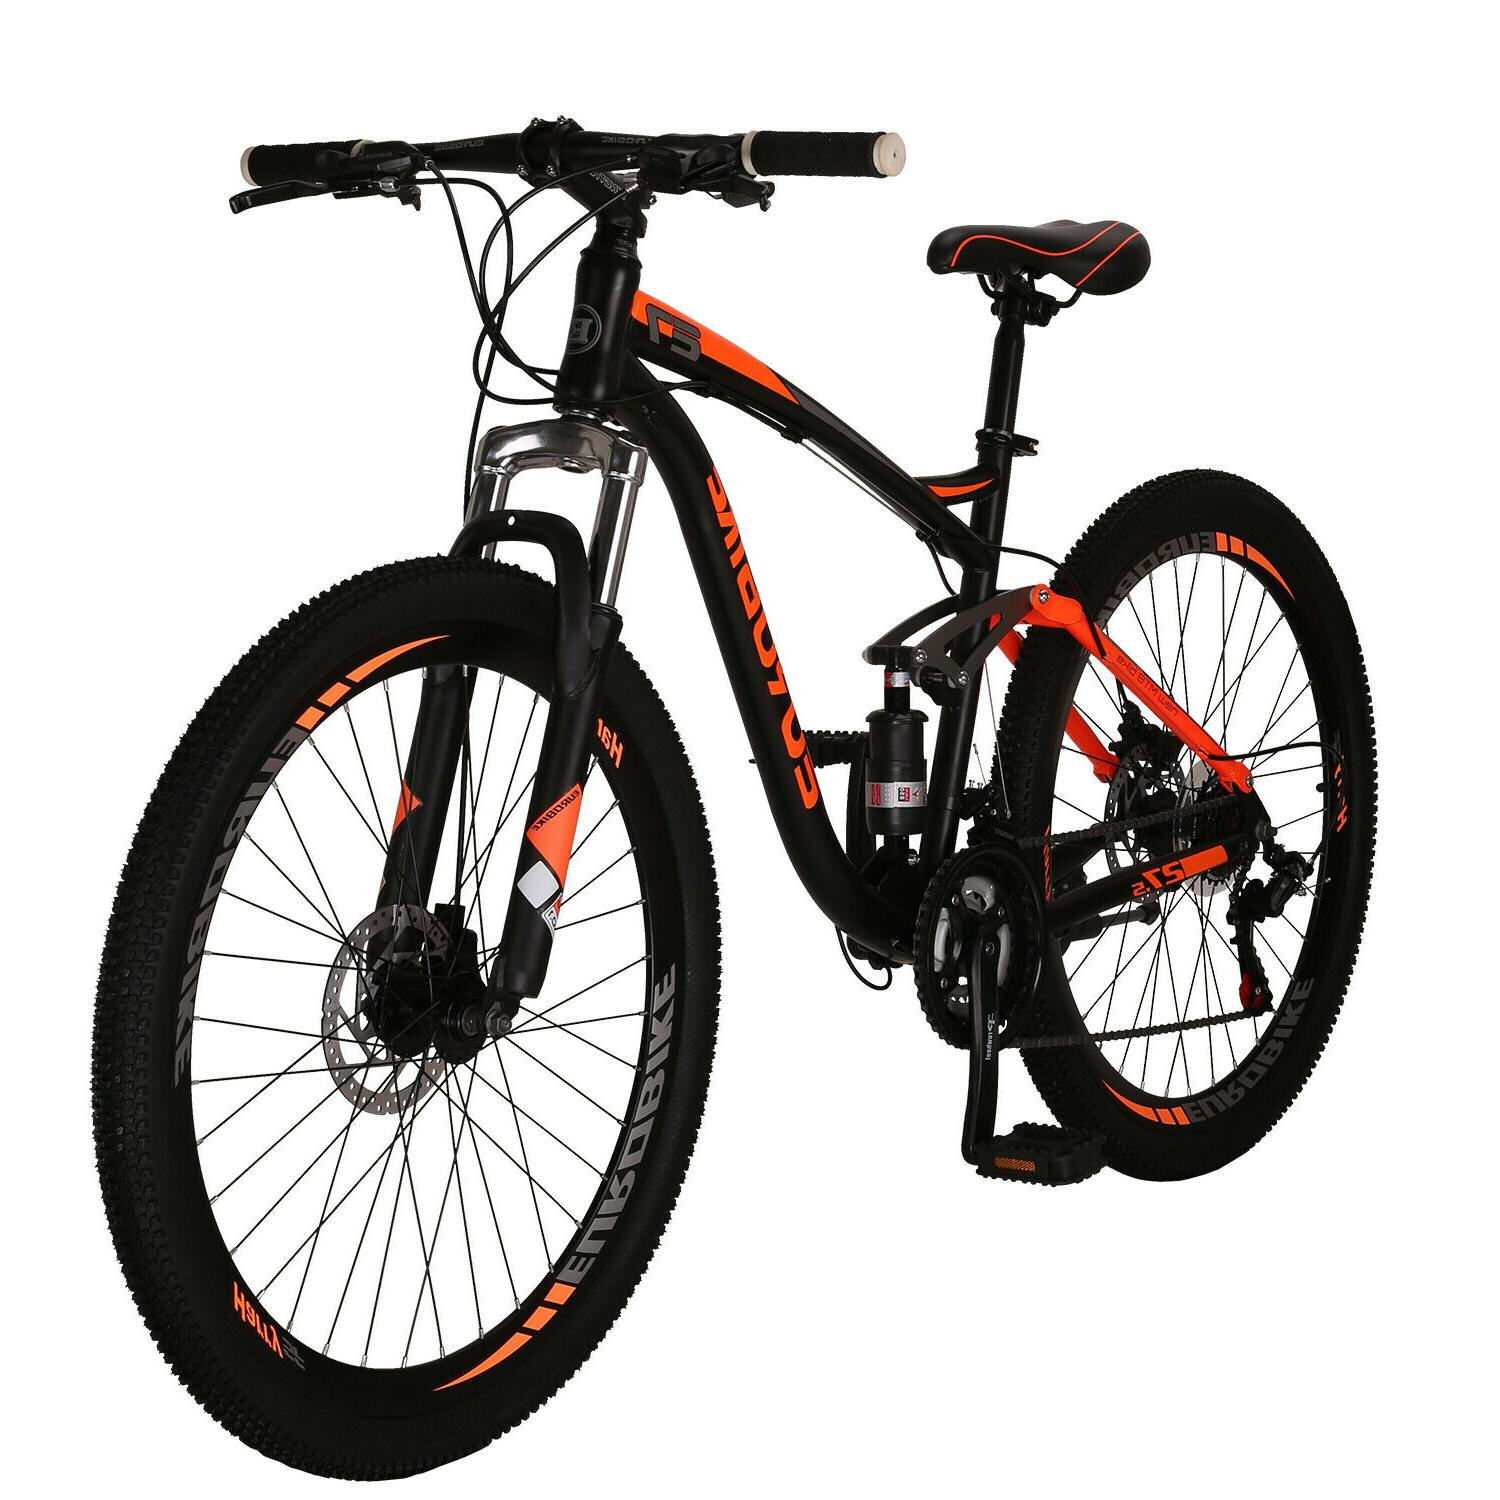 "Full Suspension Shimano 21 Speed Bicycle 27.5"" Disc Brakes"